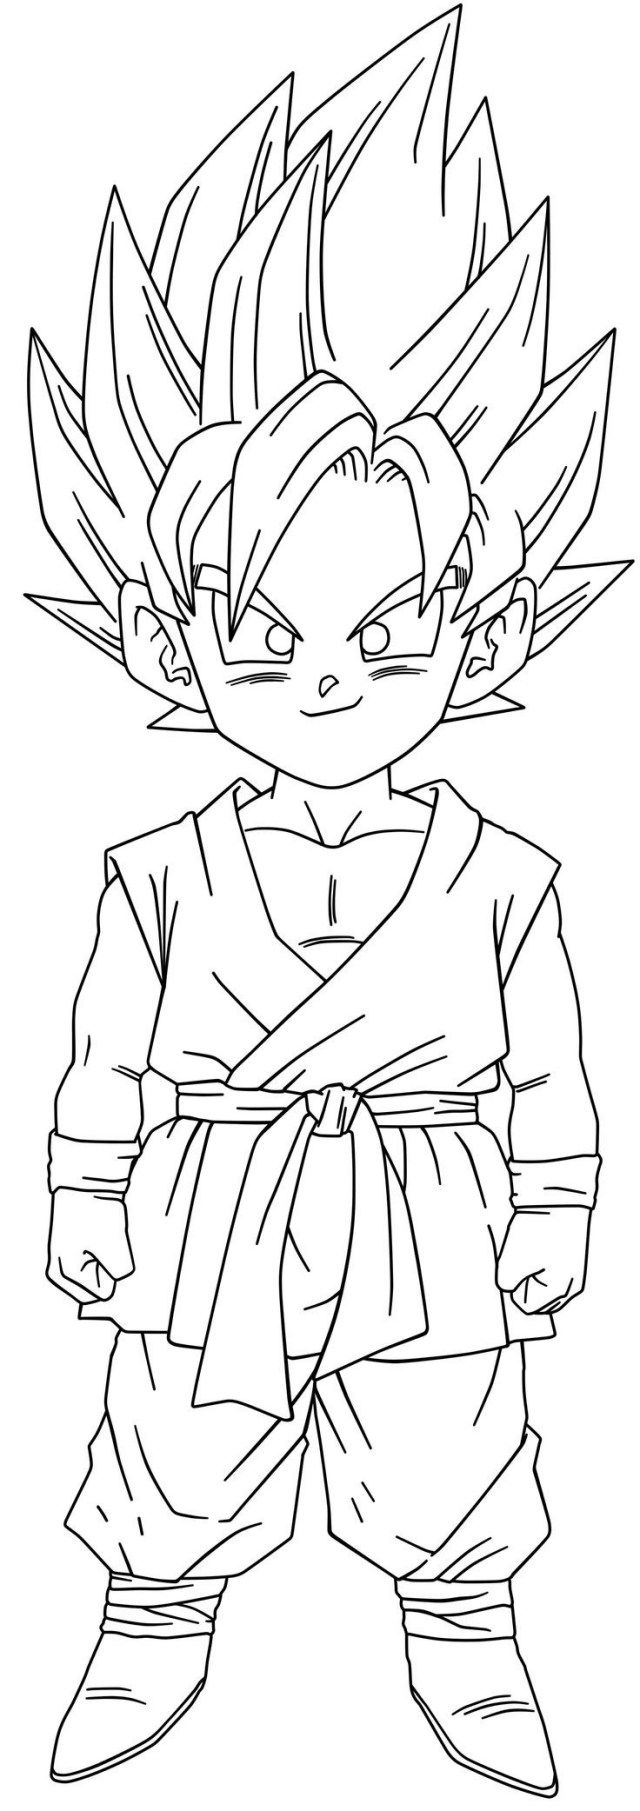 coloring pictures of goku goku coloring pages free printable goku coloring pages of goku coloring pictures